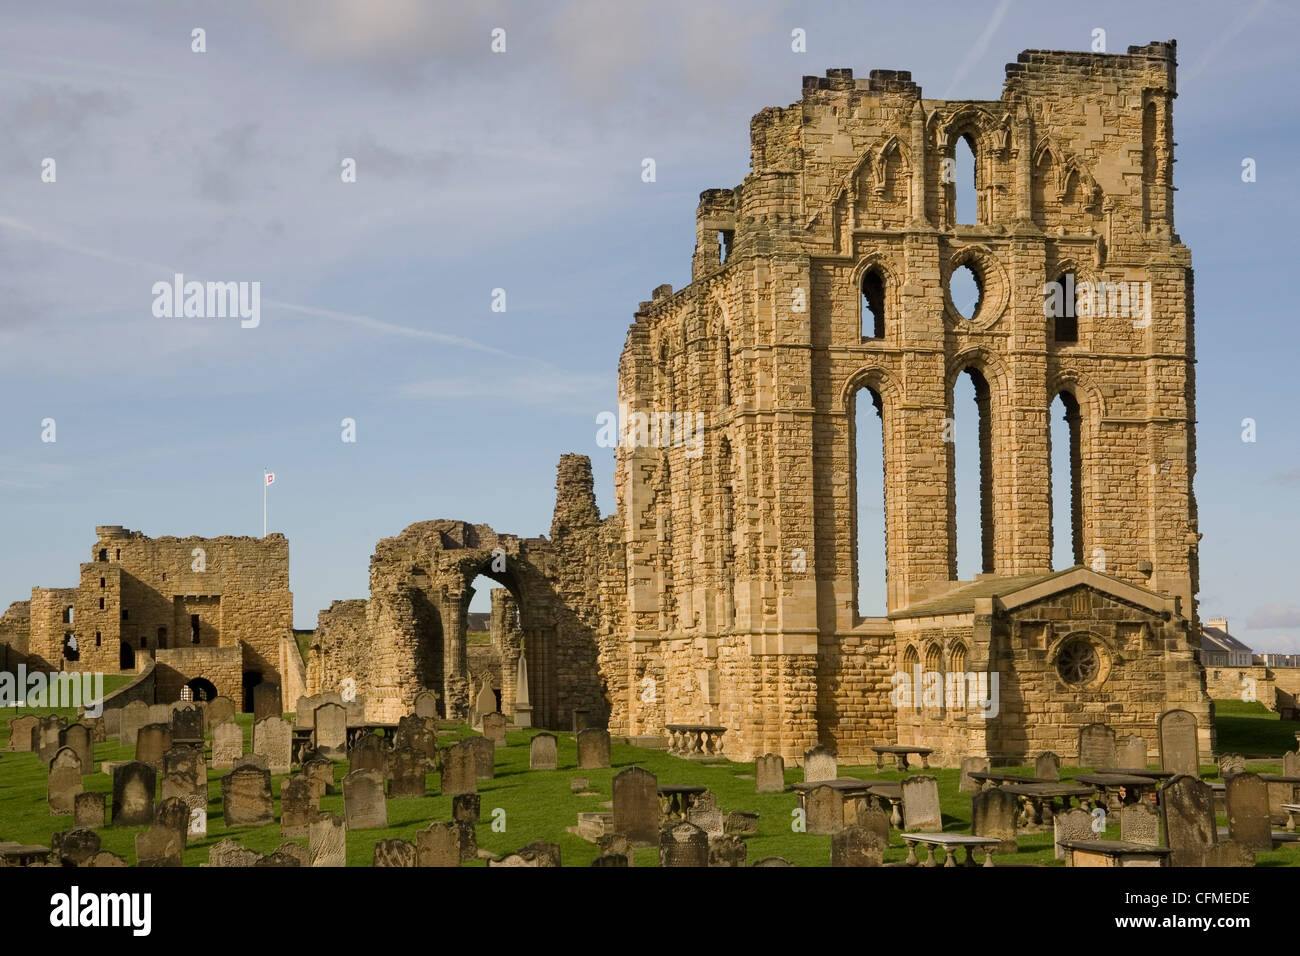 Tynemouth Castle and Priory, Tyne and Wear, England, United Kingdom, Europe - Stock Image